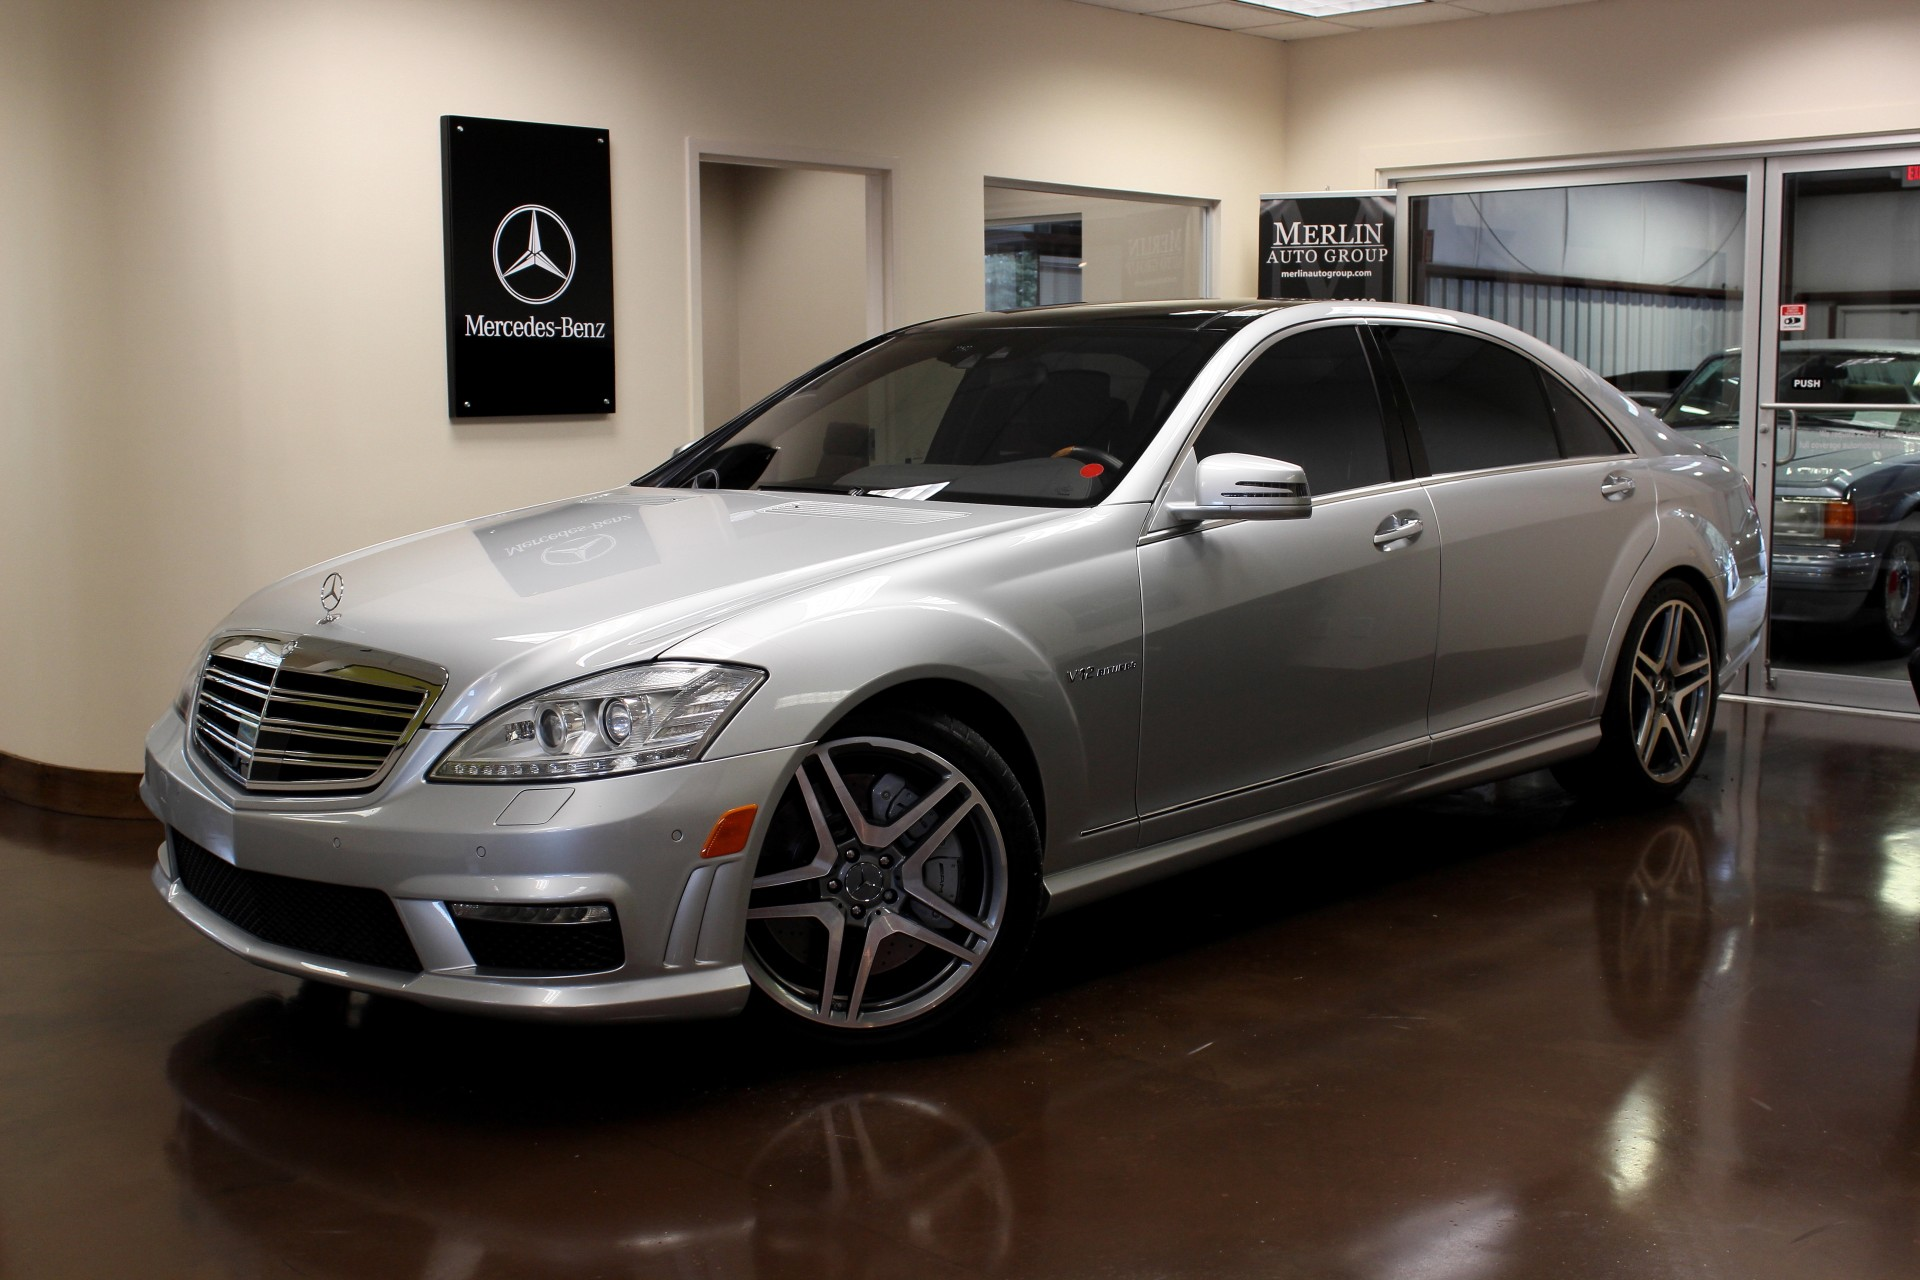 Used 2011 mercedes benz s class stock p2908 ultra luxury for Mercedes benz south atlanta service